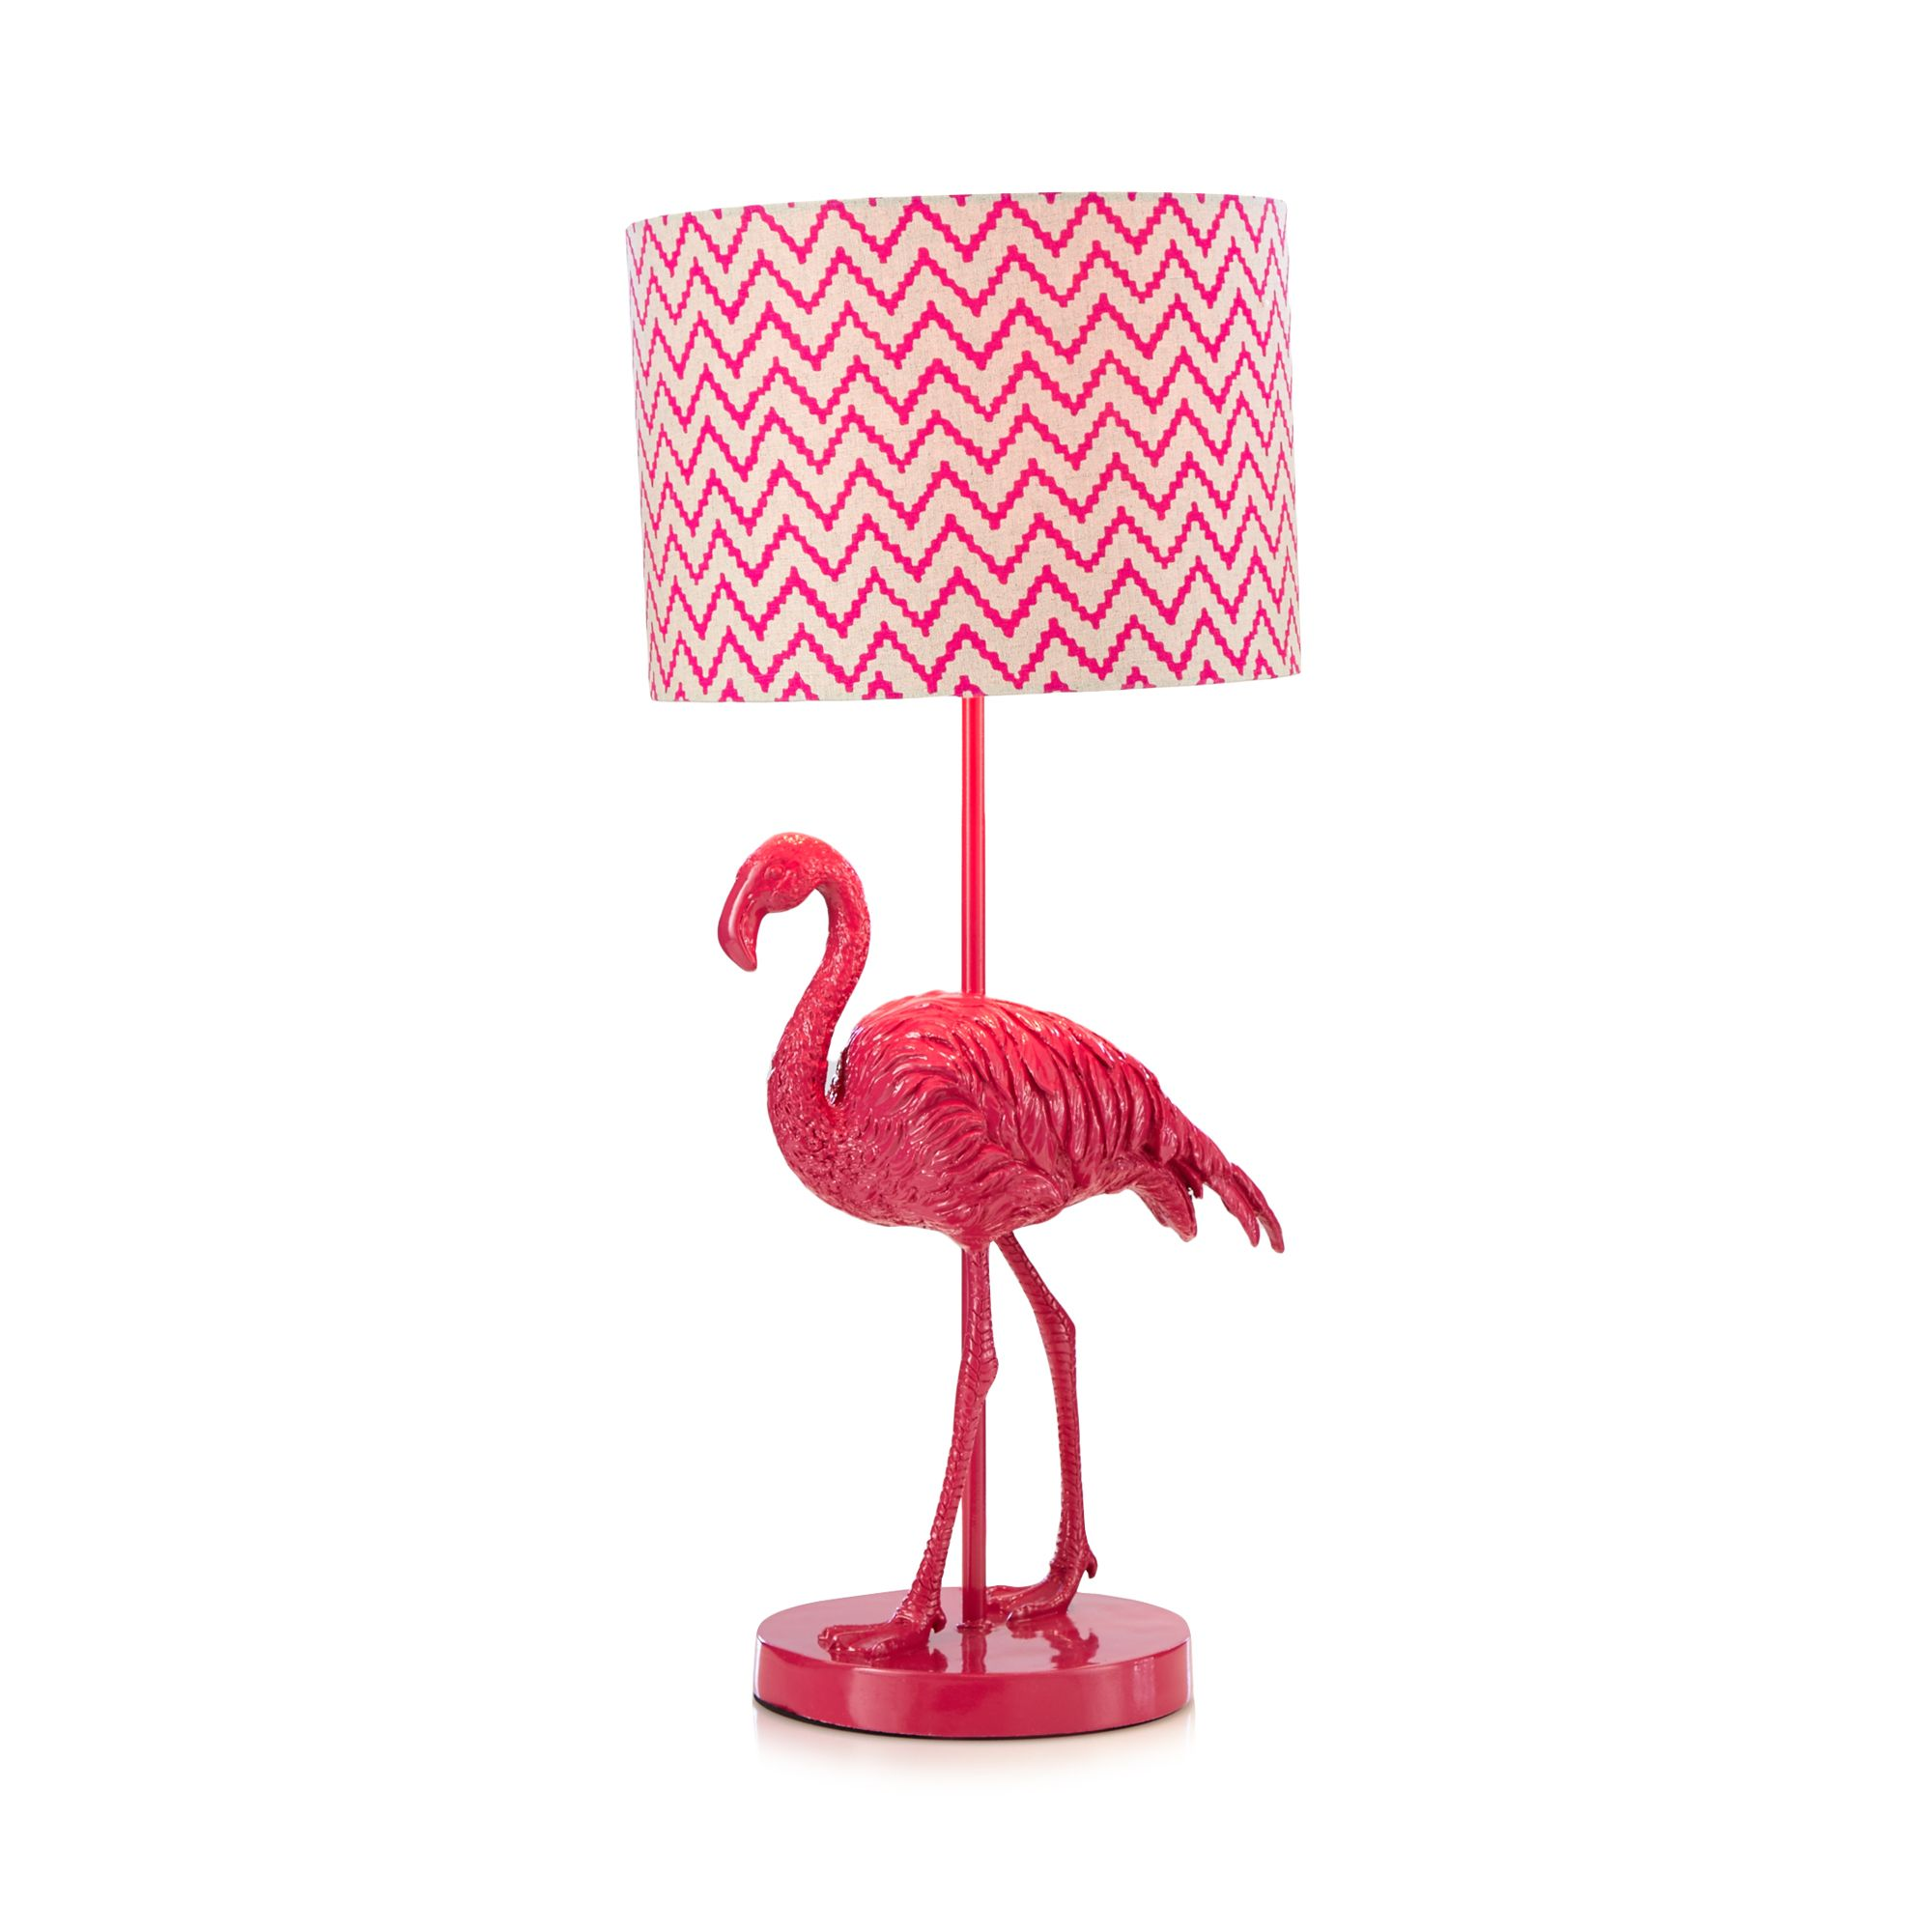 Butterfly Home By Matthew Williamson Designer Pink Flamingo Lamp From Debenhams Ebay